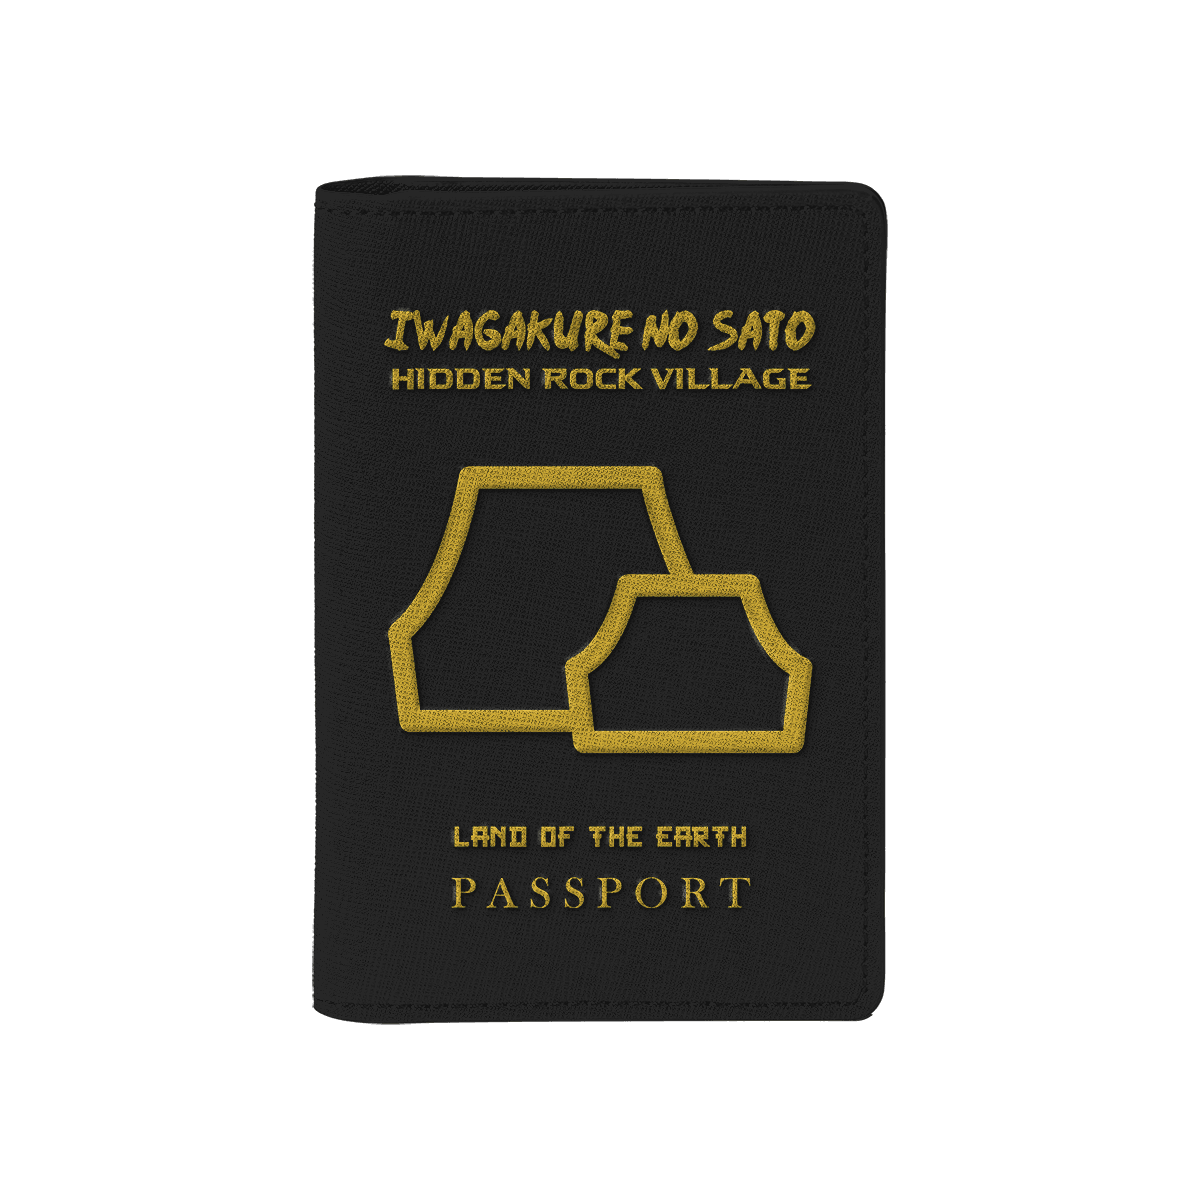 Iwagakure | Hidden Rock Village Passport Cover - Fandomaniax-Store